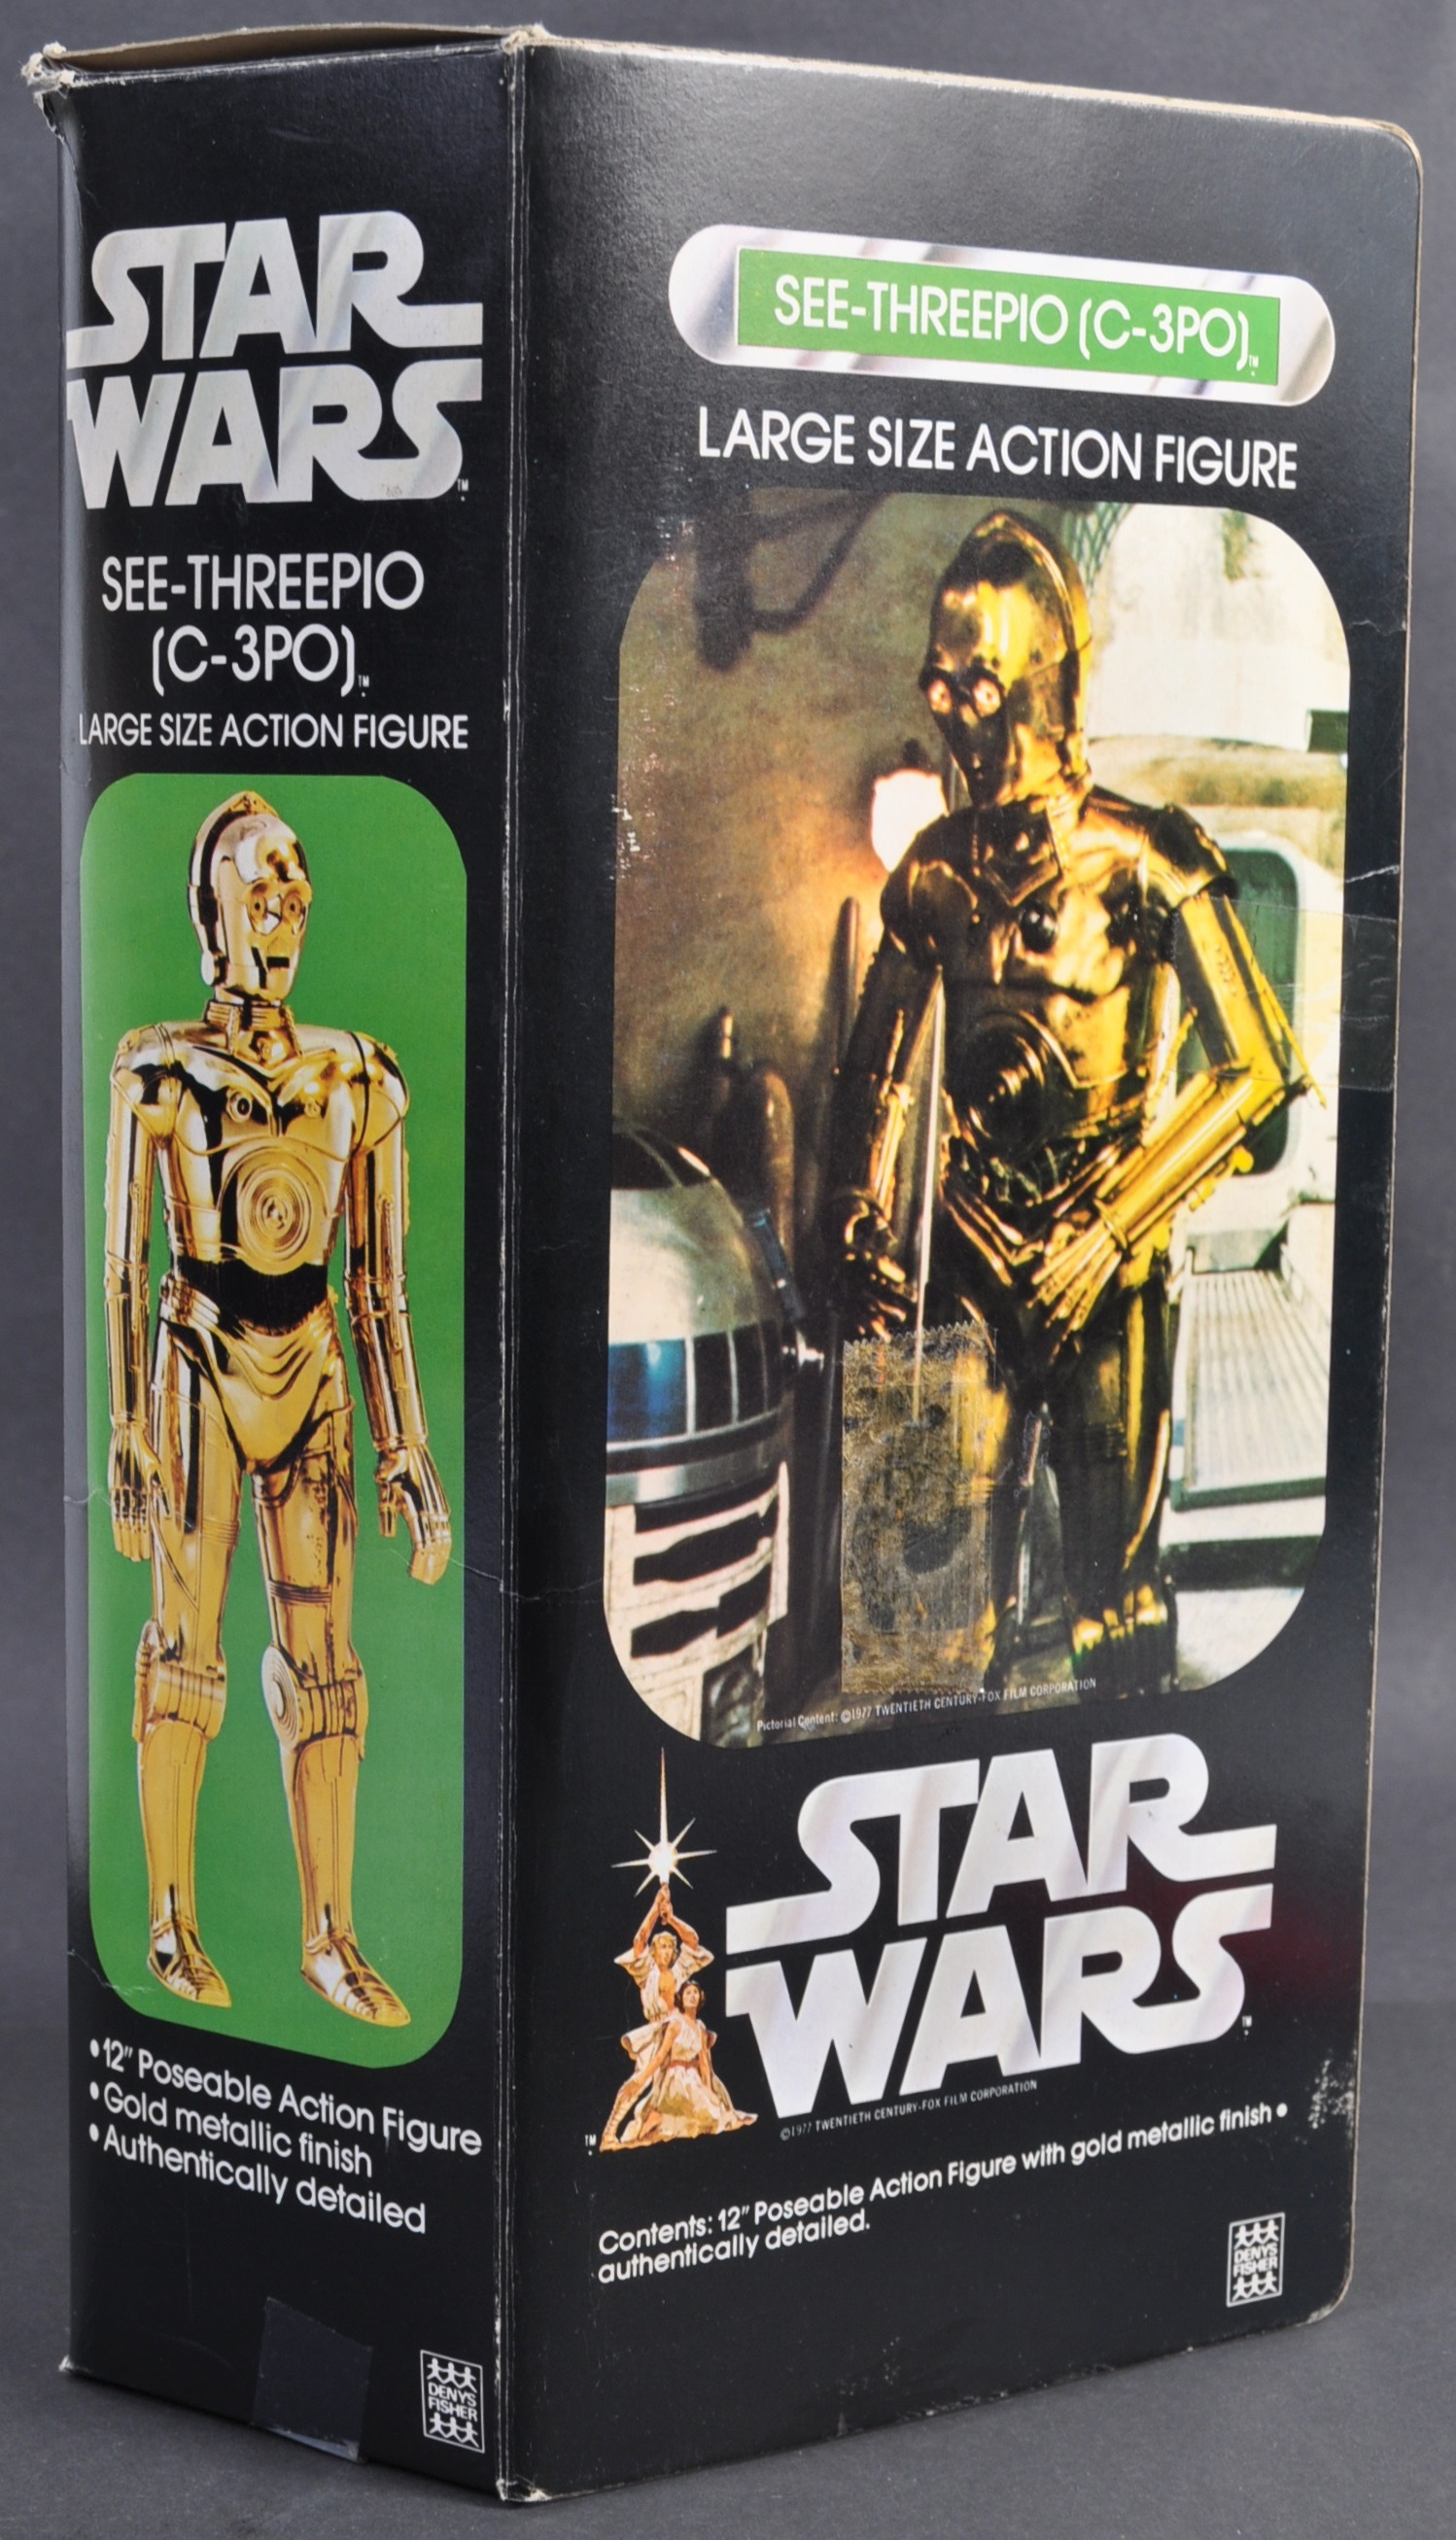 """STAR WARS - RARE DENYS FISHER 12"""" C3PO BOXED ACTION FIGURE - Image 2 of 6"""